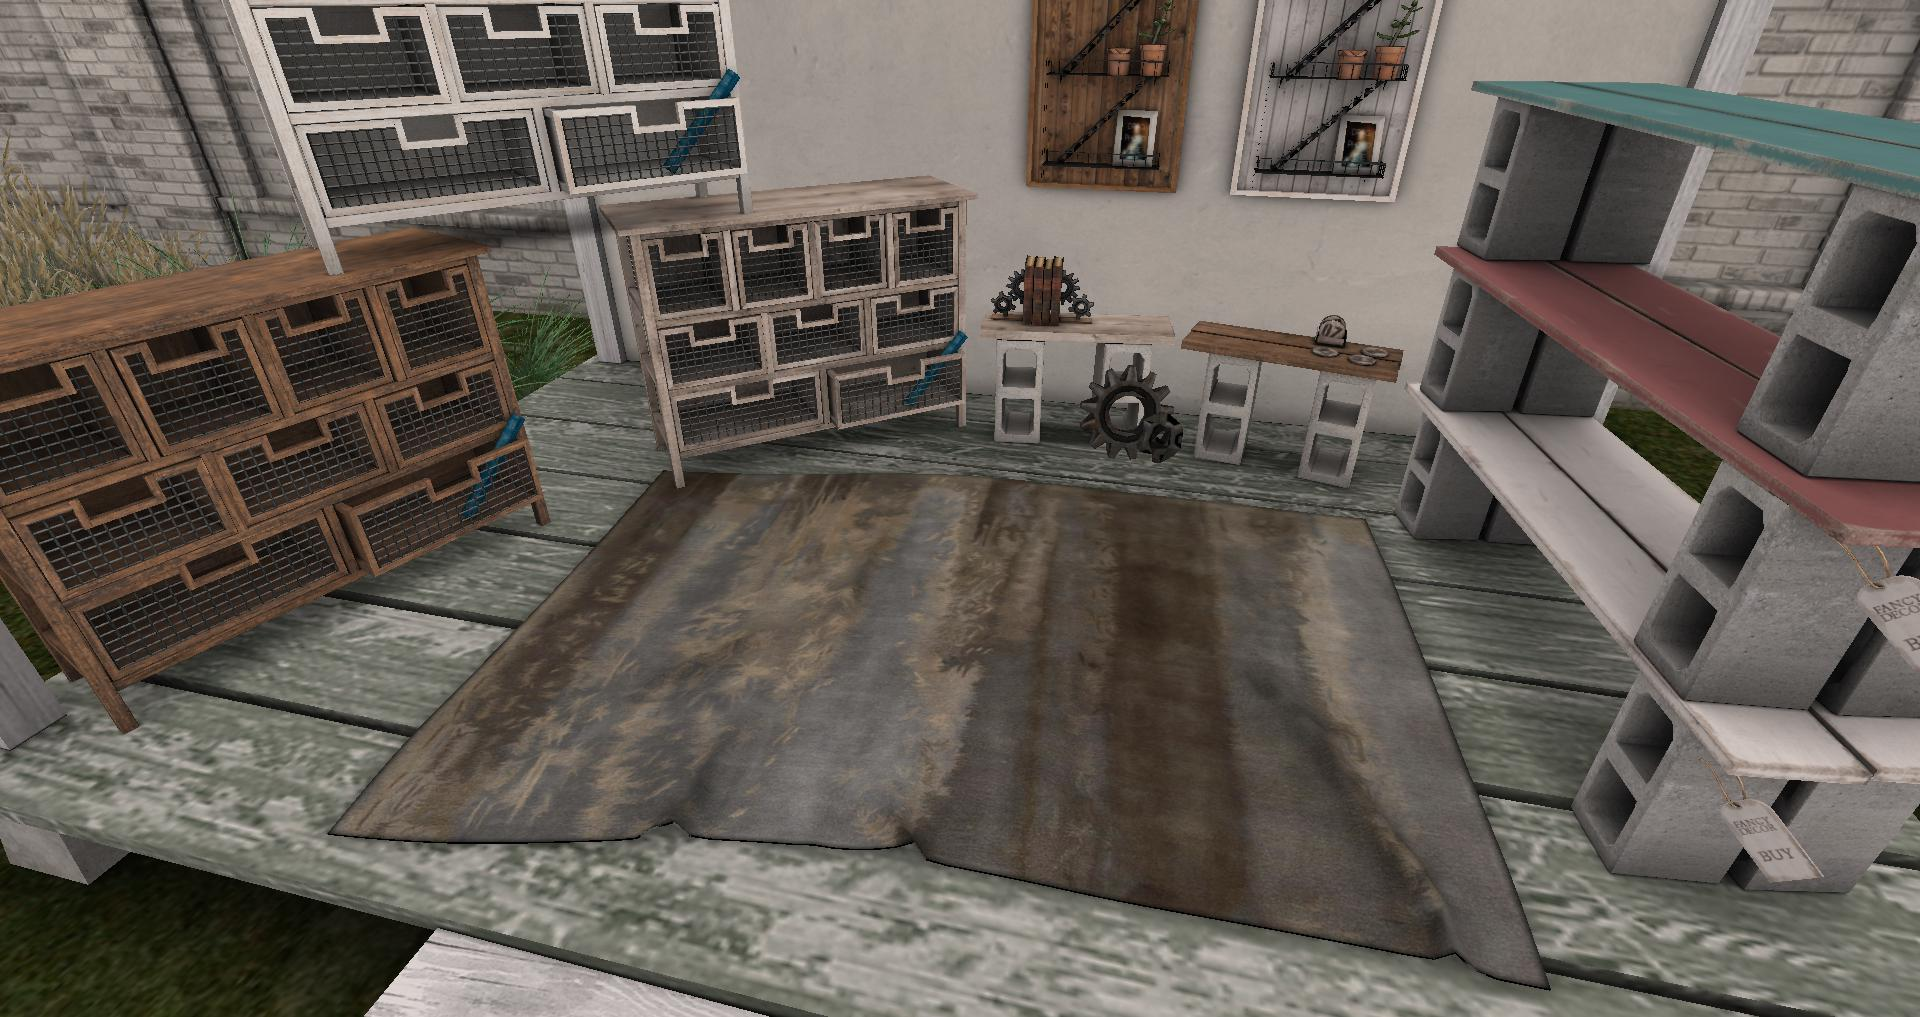 rugs are so hard to find. Designers